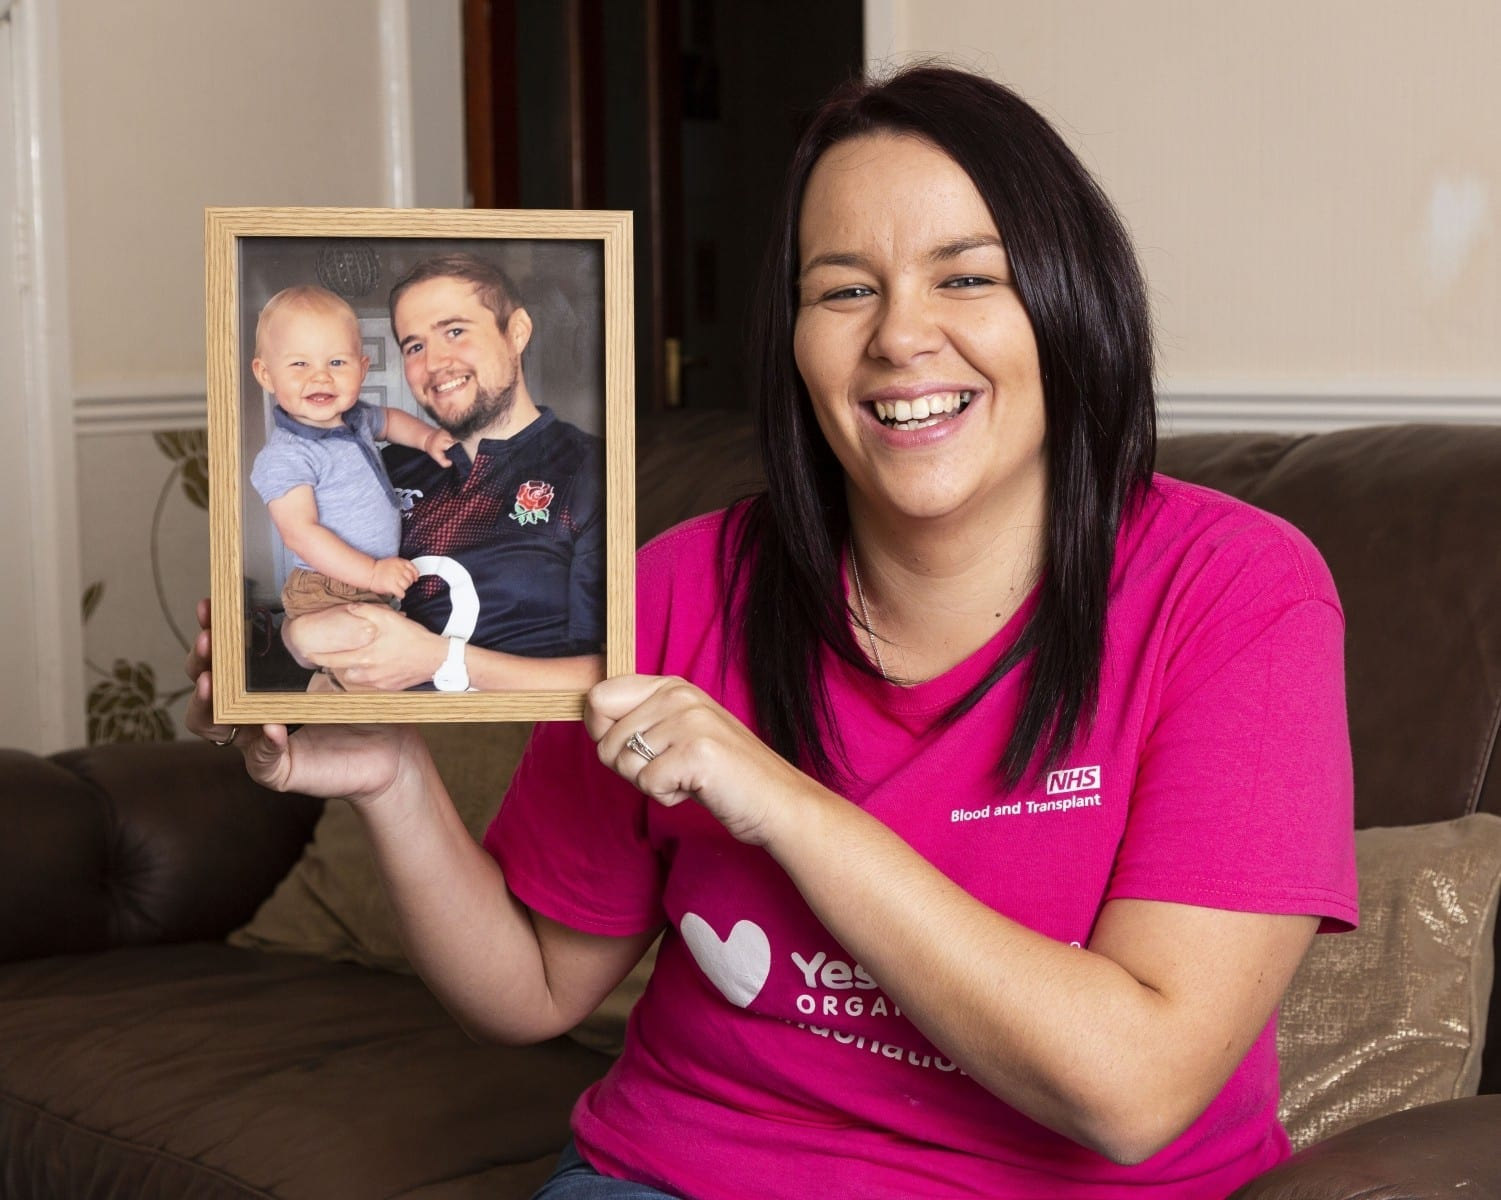 Devoted Young Mum Is Training To Become A Transplant Nurse – After Her Husband Tragically Died From Heart Transplant Complications